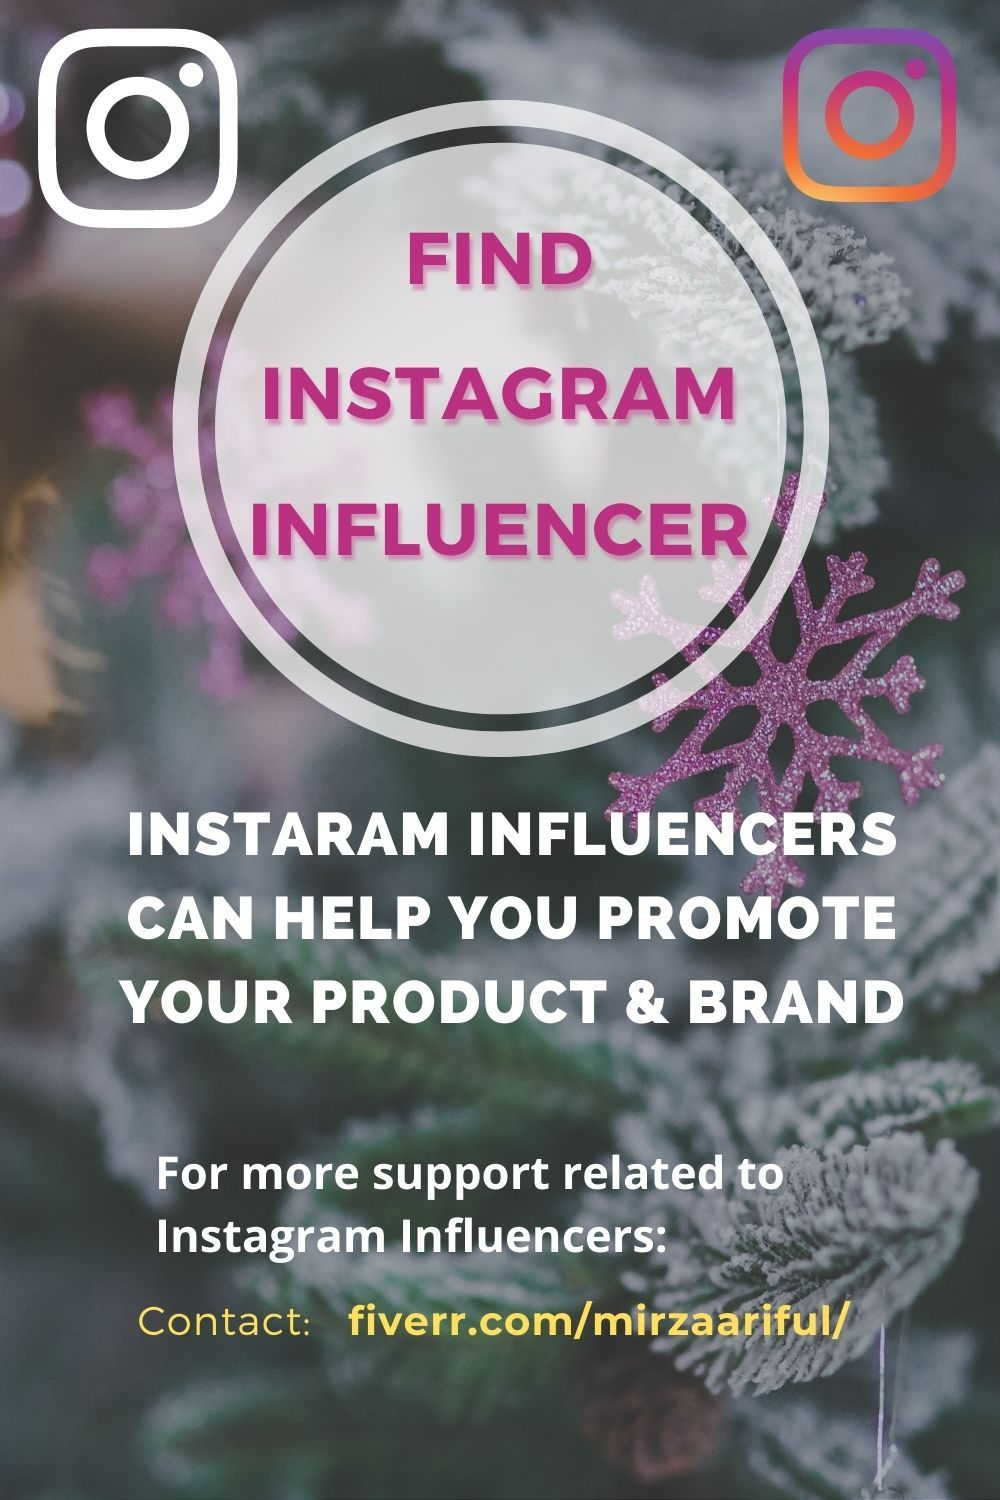 Mirzaariful I Will Find Top Instagram Influencer Of Any Niche For Influencer Marketing For 10 On Fiverr Com In 2020 Instagram Influencer Top Instagram Influencers Influencer Marketing